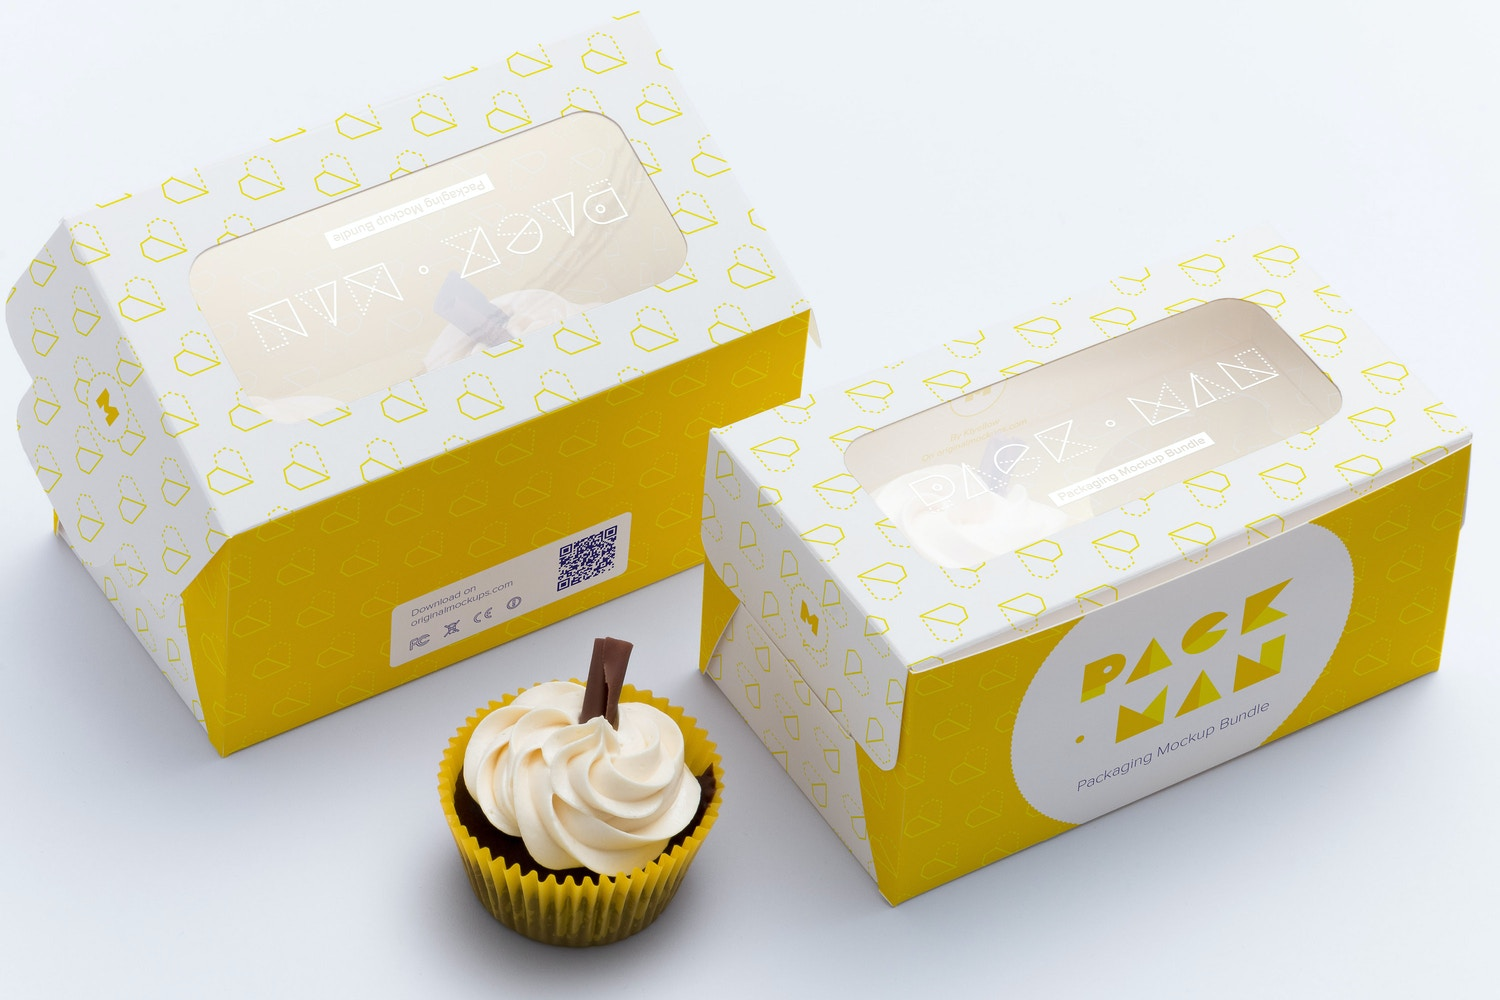 Two Cupcake Box Mockup 02 by Ktyellow  on Original Mockups